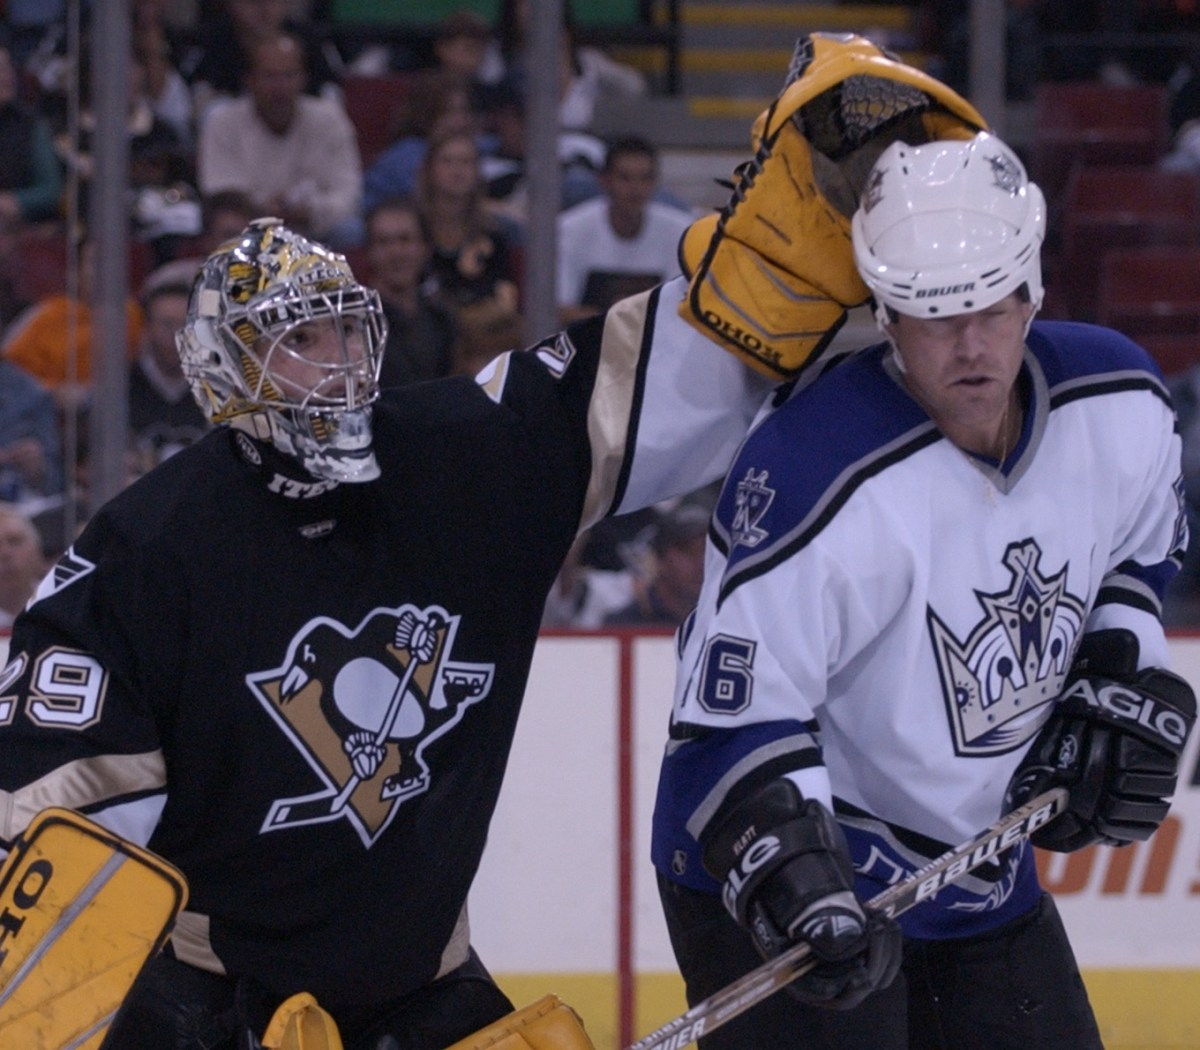 "After his debut as a rookie, Marc-Andre Fleury received a subtle nod from the visiting team, including Trent Klatt as seen here. ""The Kings came off the bench, and all of them to a man skated over to Fleury and tapped him on the pads,"" Mike Lange said. ""It was an unbelievable moment."""